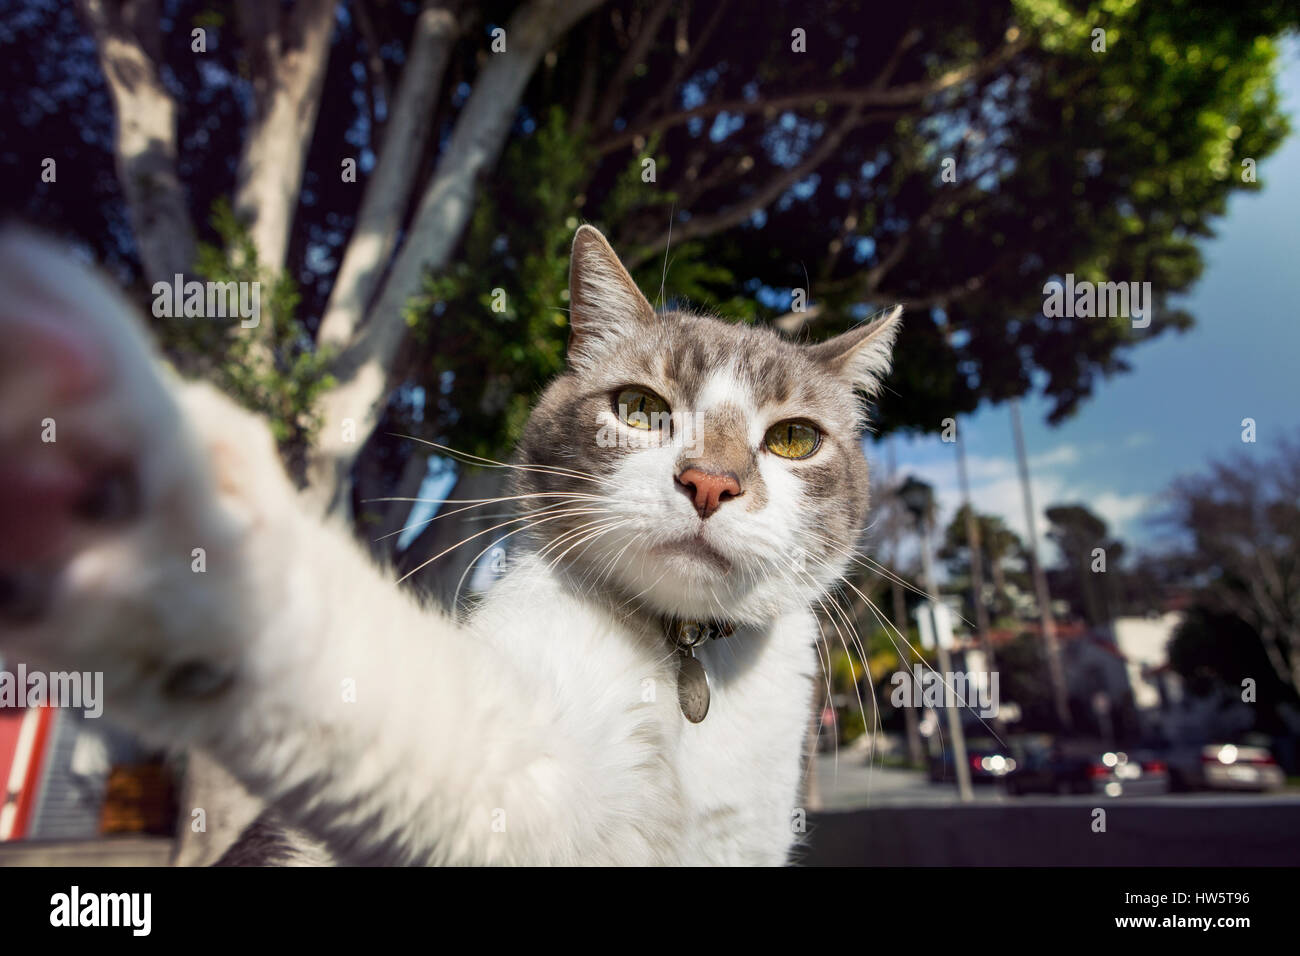 White and gray cat -- with paw extended toward camera --taking a selfie outdoors on a sunny day. - Stock Image